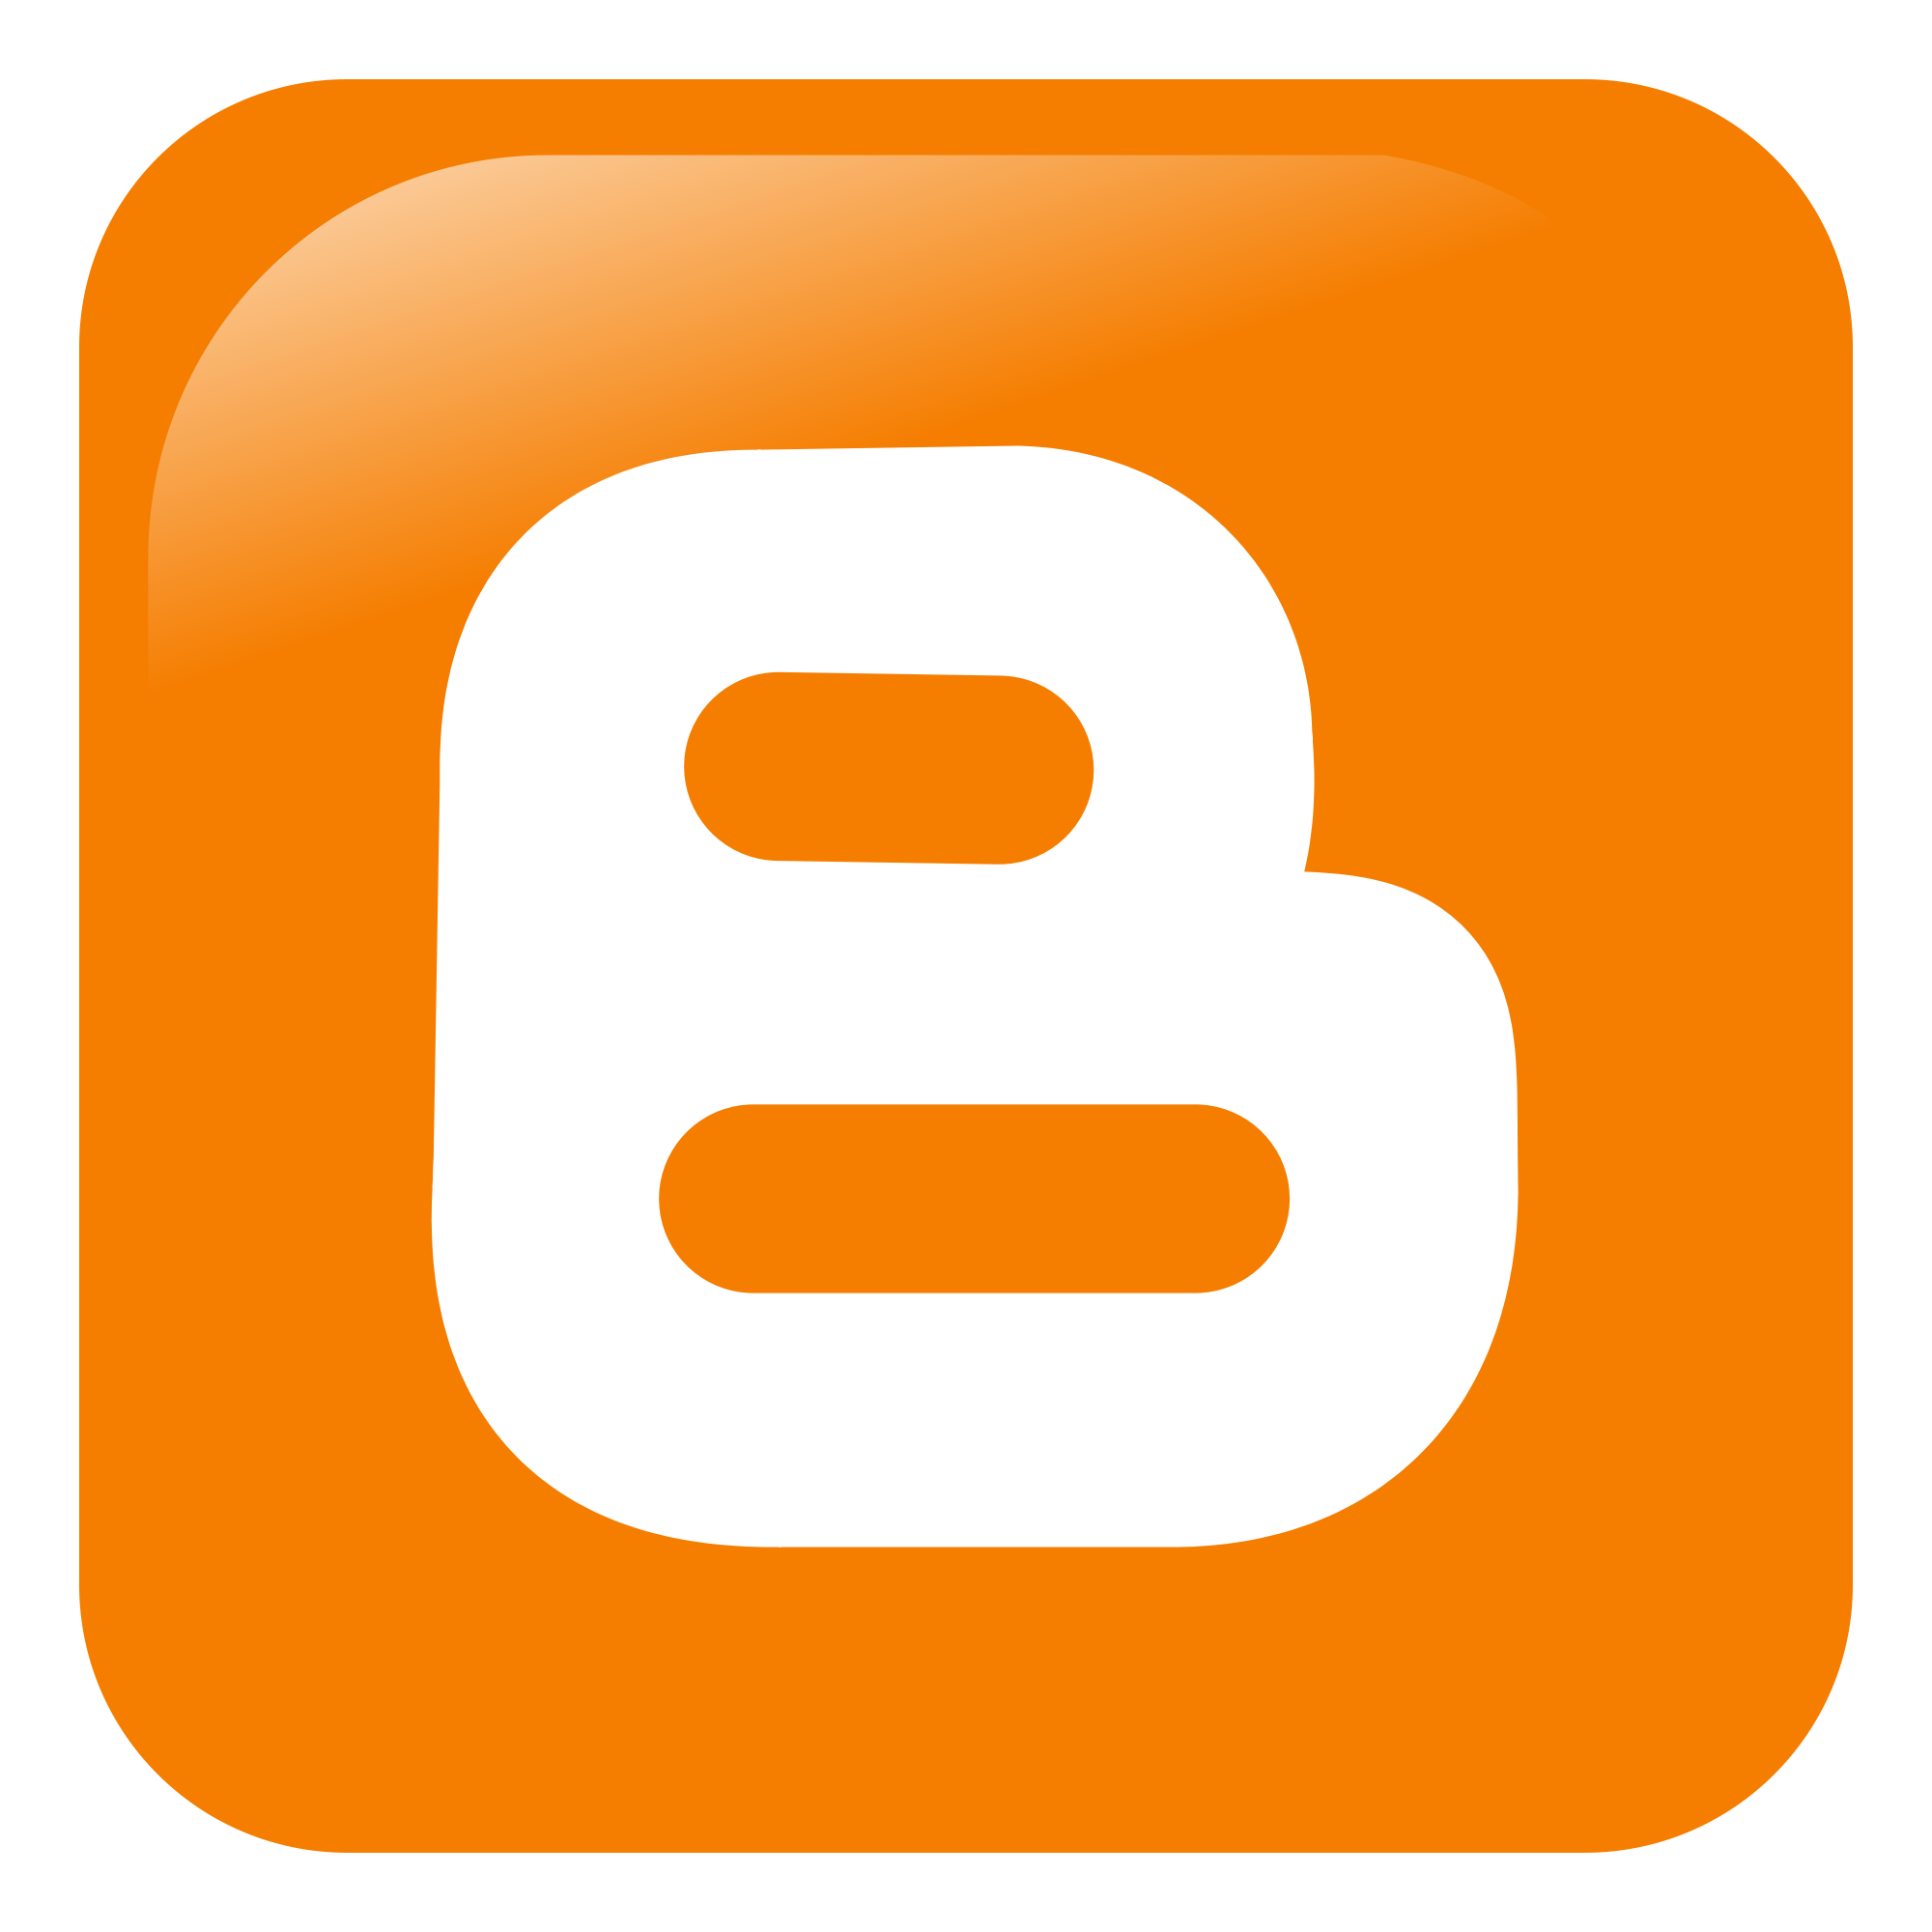 Blogger is a blog-publishing service that allows private or multi-user blogs with time-stamped entries.